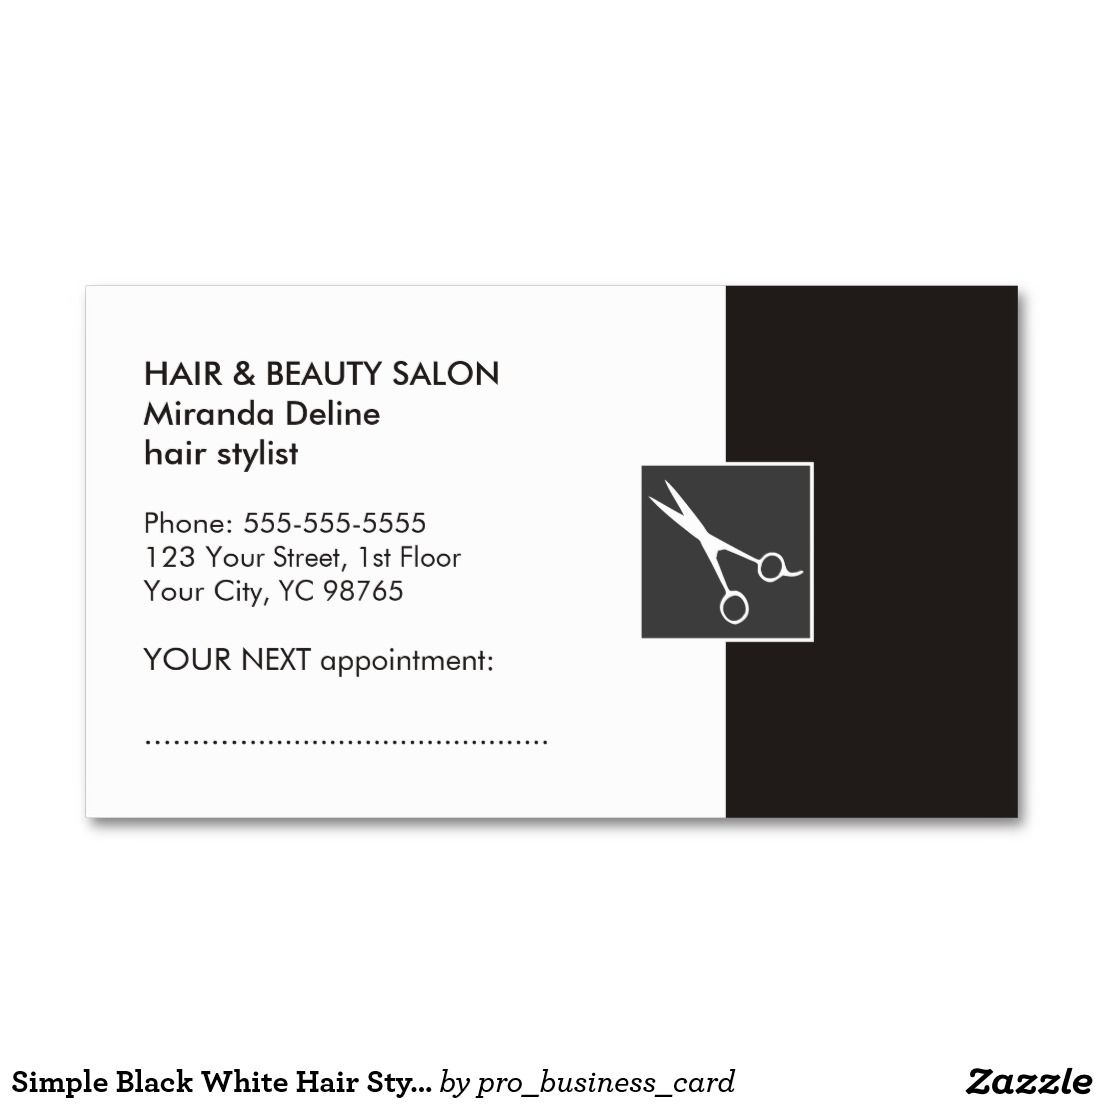 Simple Black White Hair Stylist Appointment Card Double-Sided ...